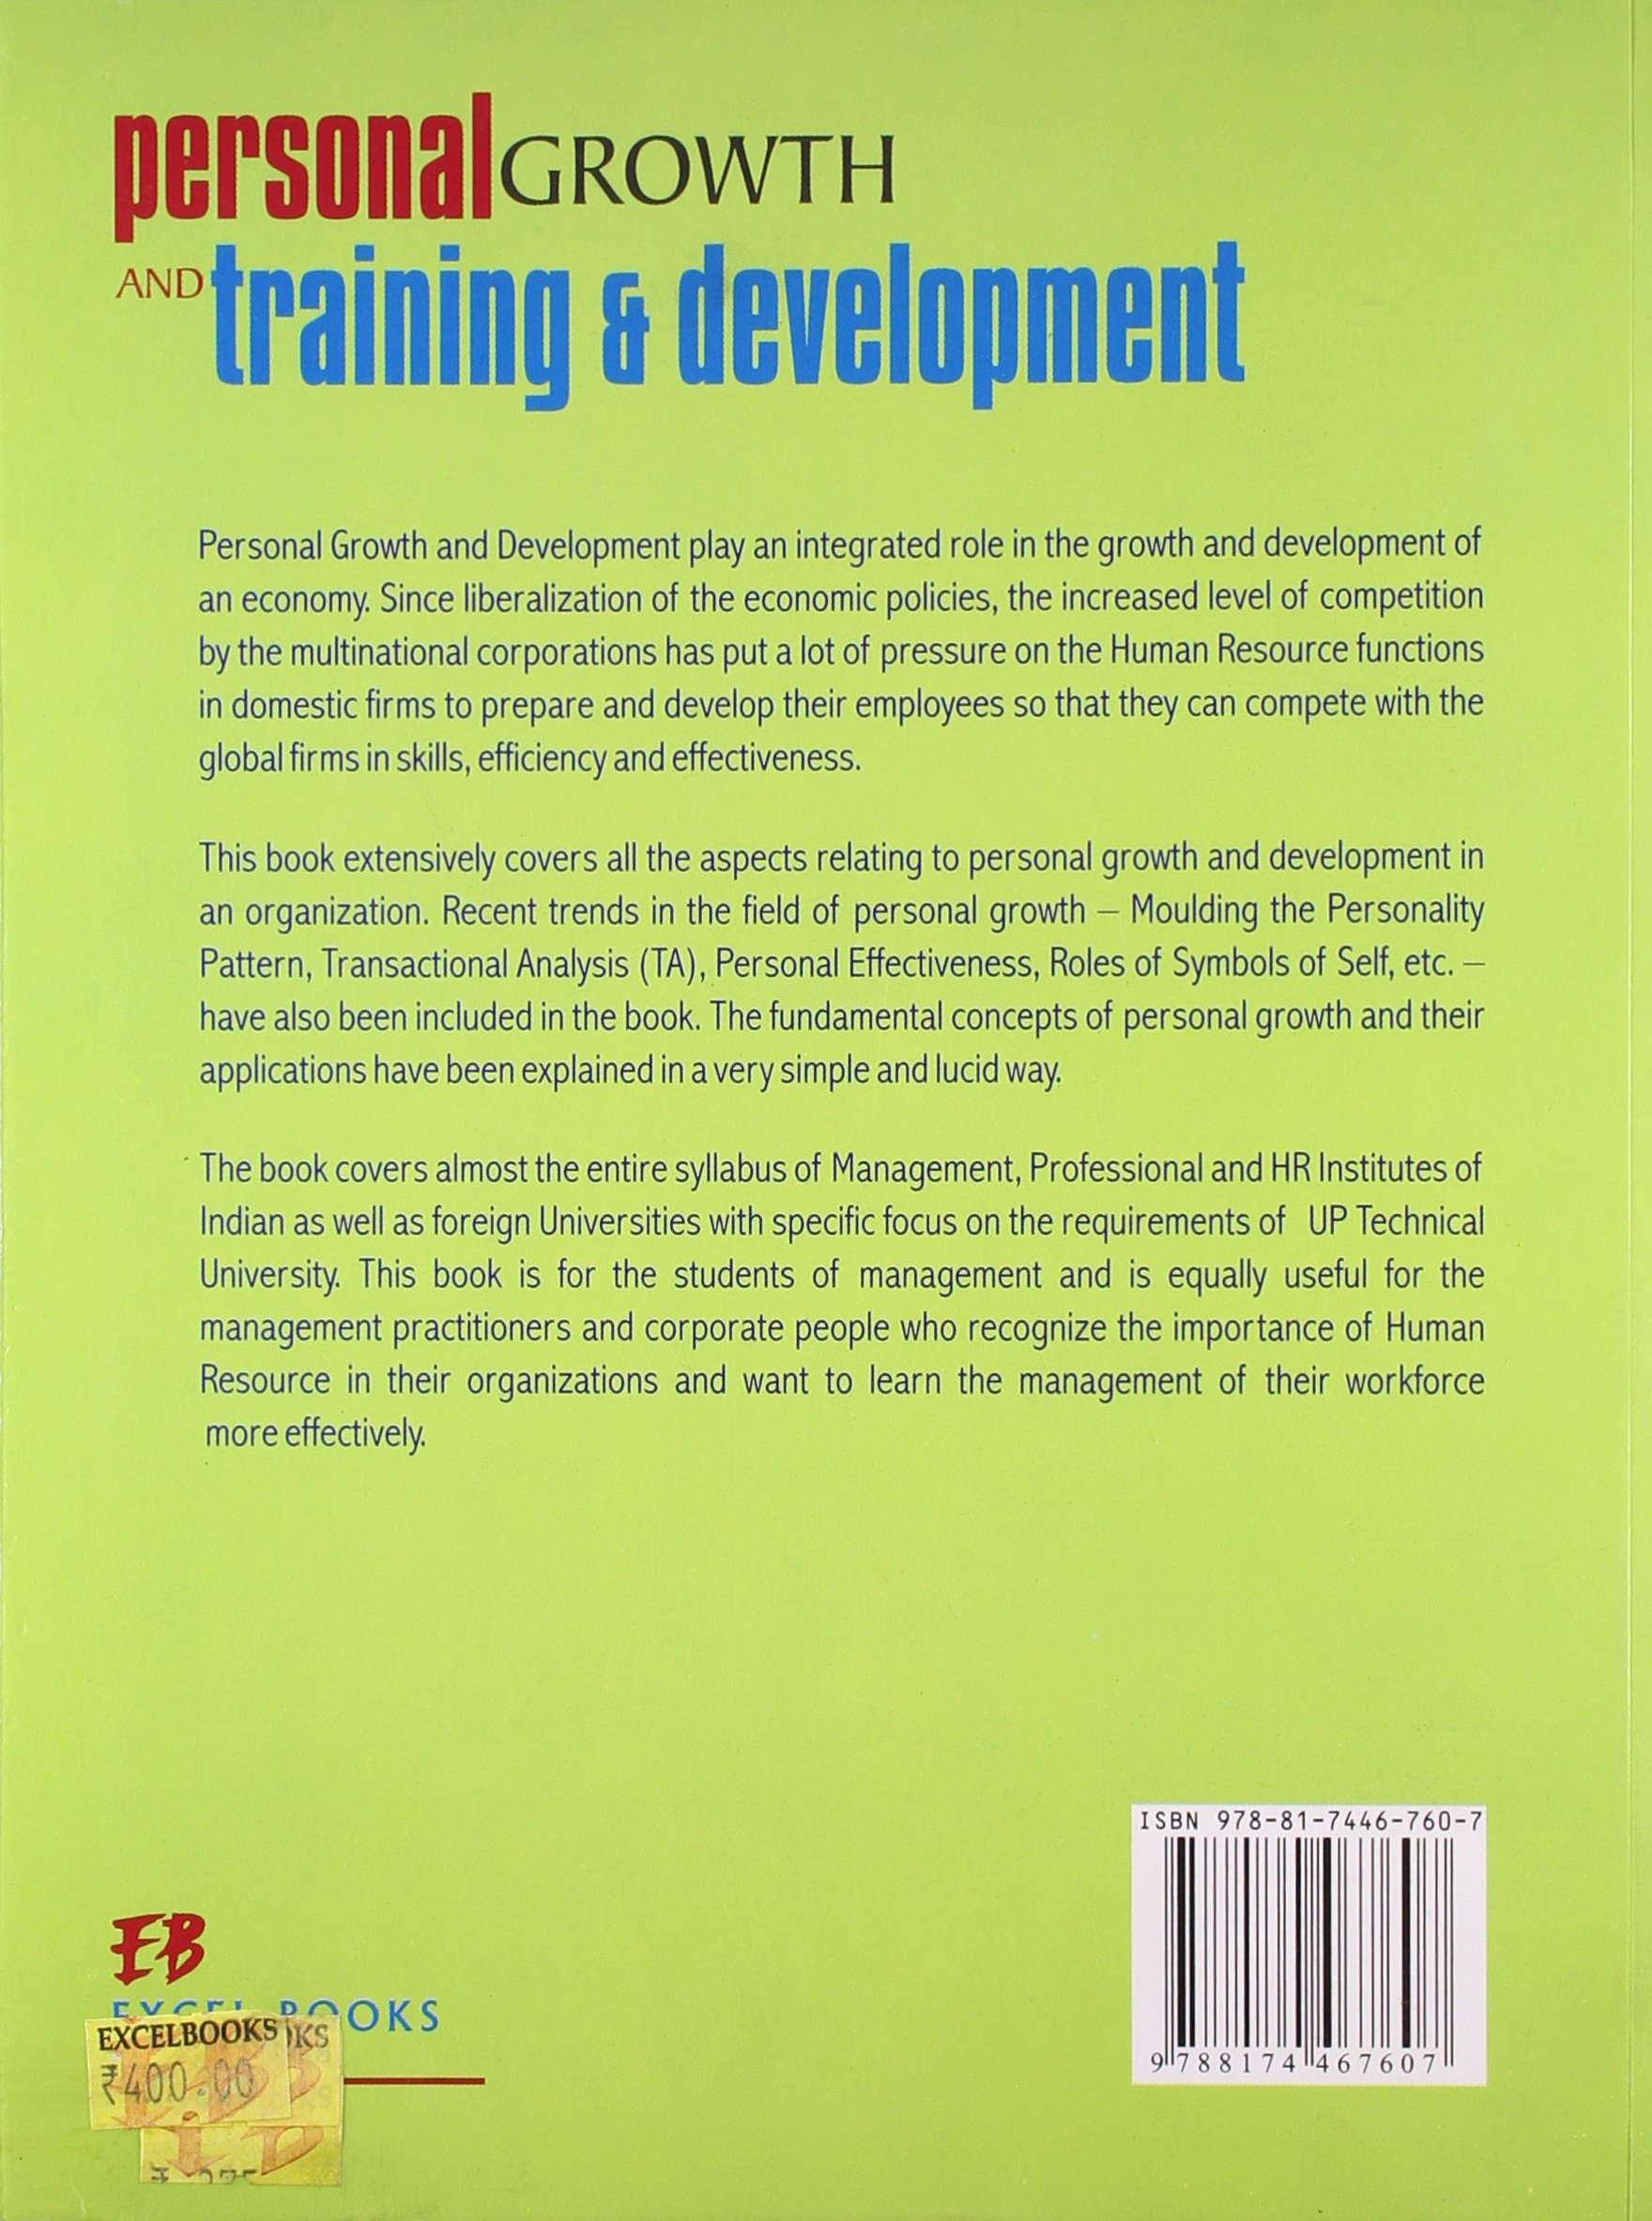 Personal Growth And Training Development Madhurima Lall Sheetal